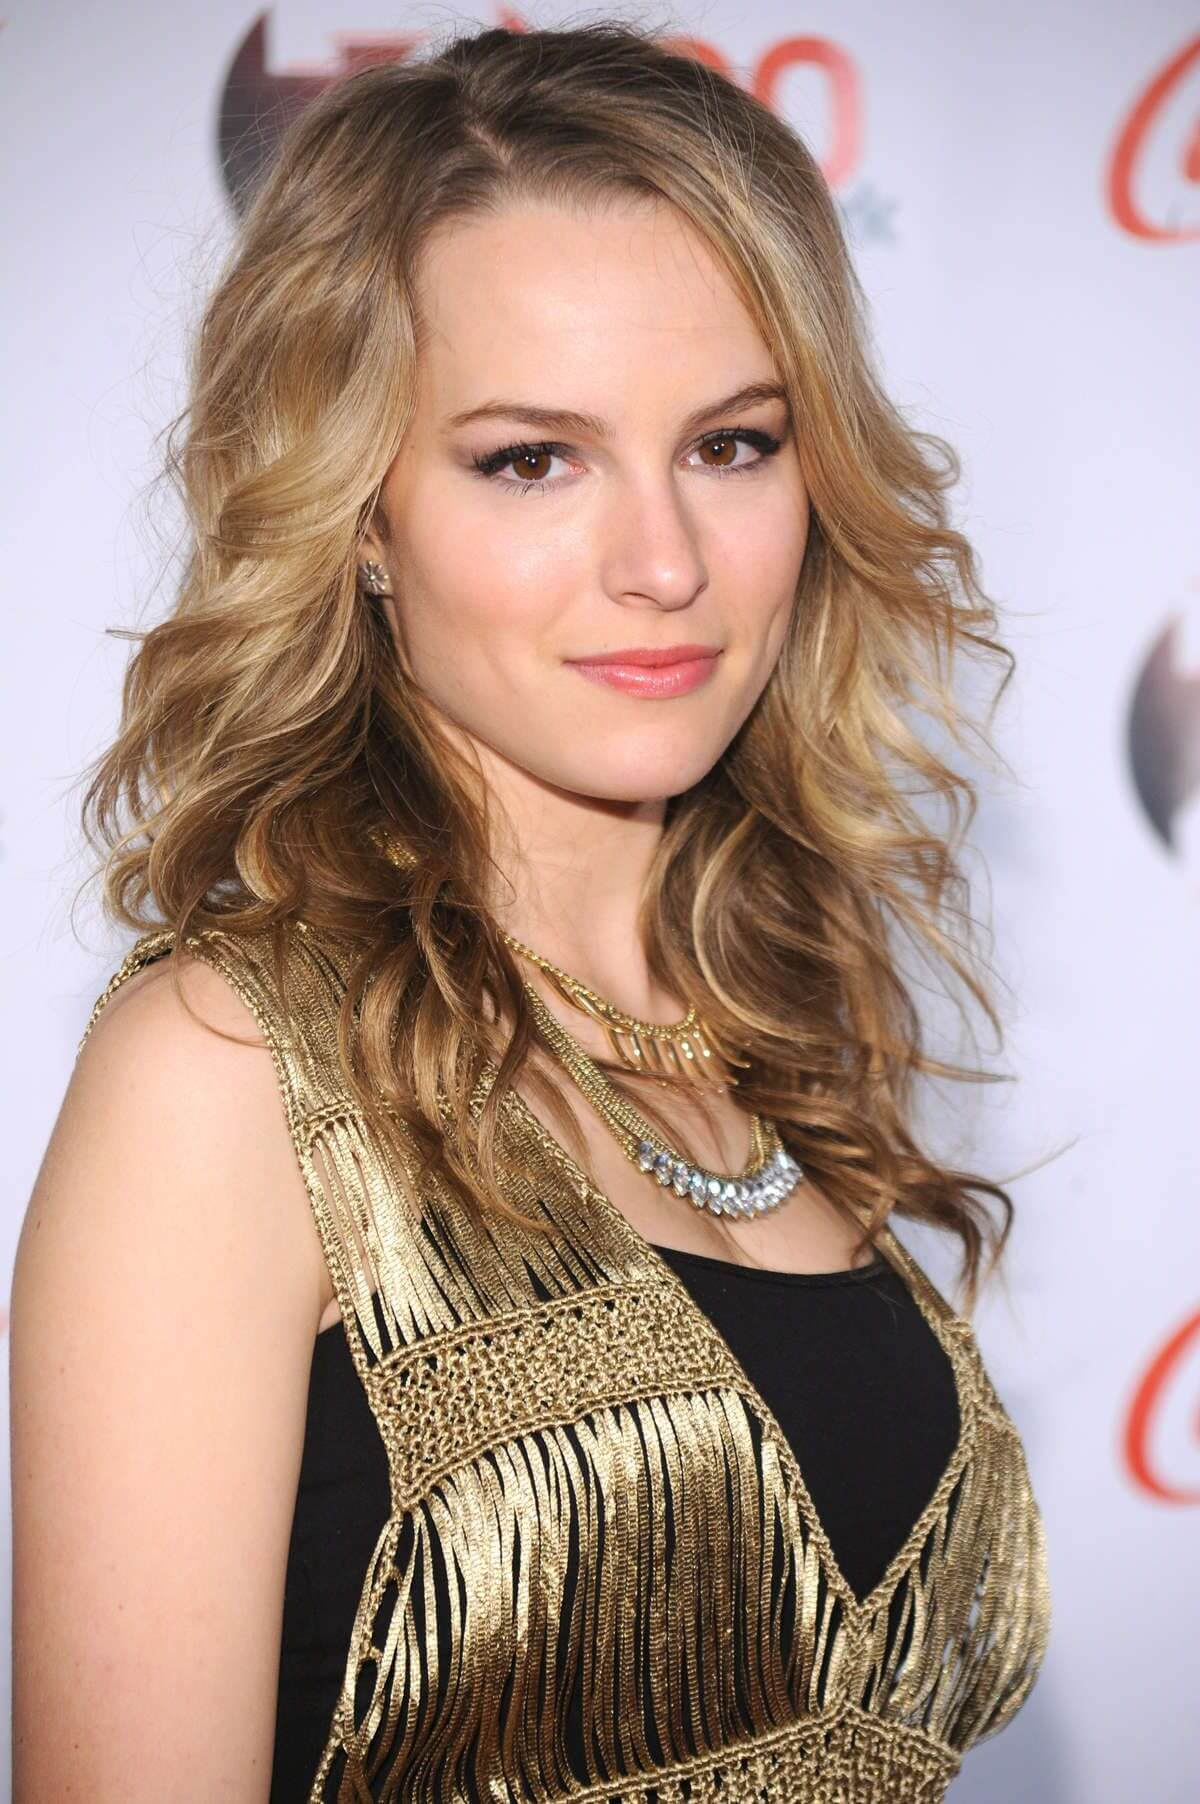 49 Hot Pictures Of Bridgit Mendler Are Delight For Fans